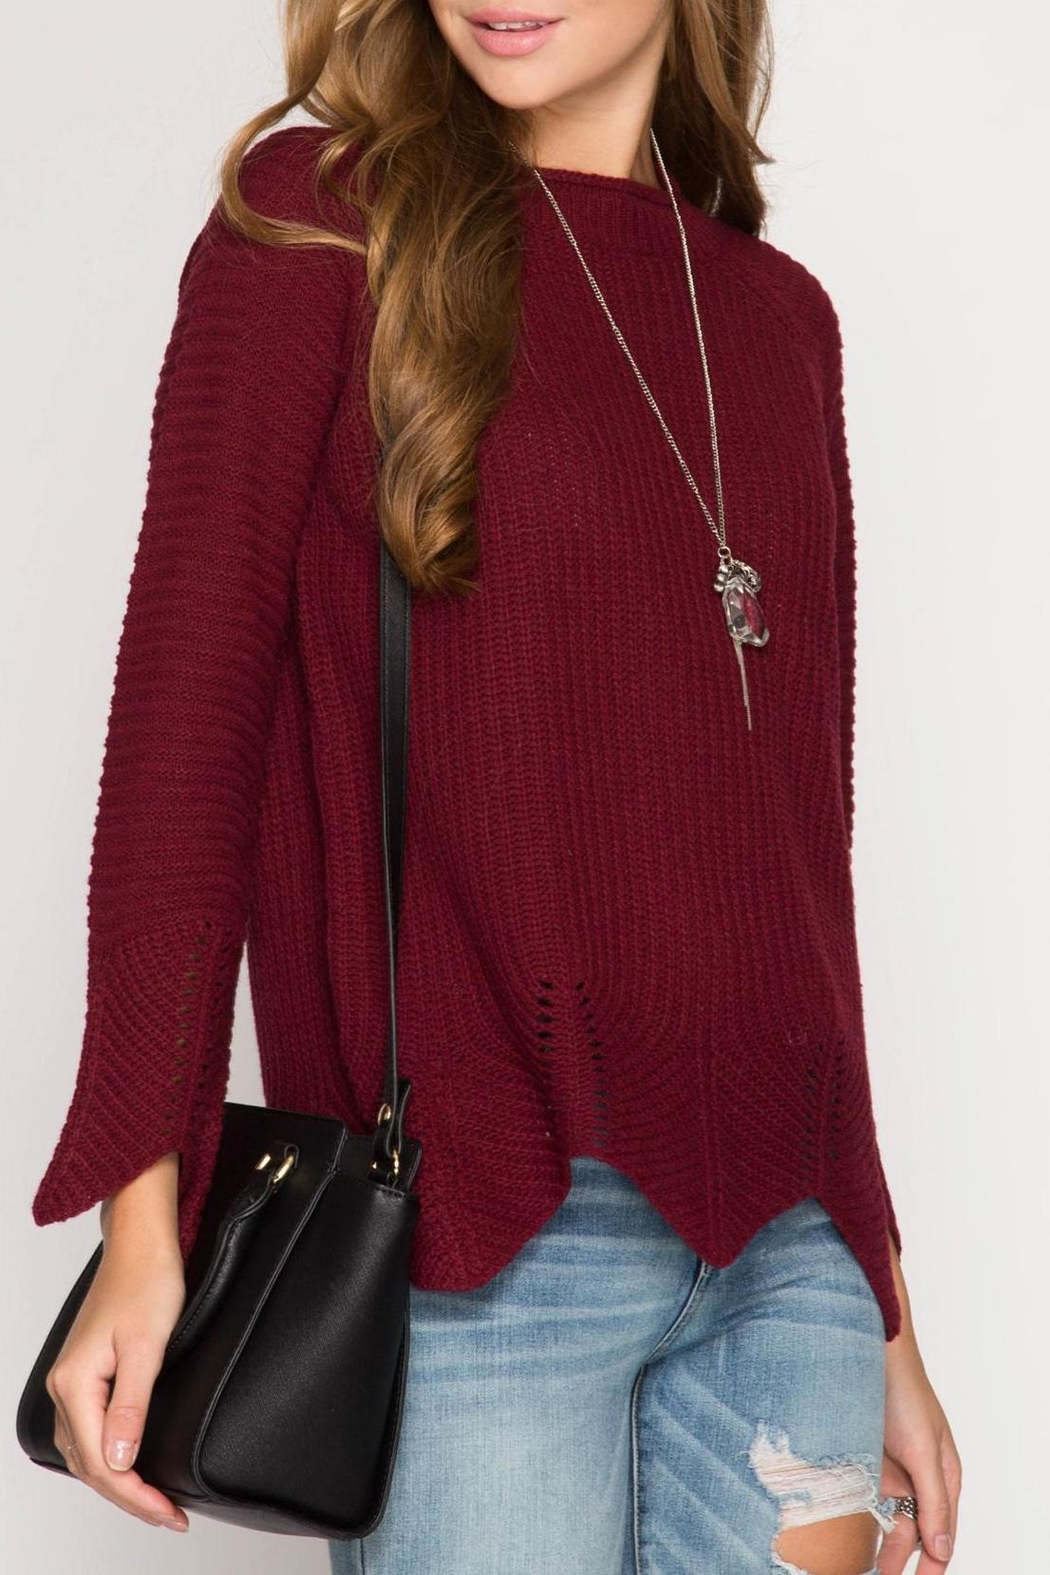 She + Sky Burgundy Scallop Sweater - Side Cropped Image